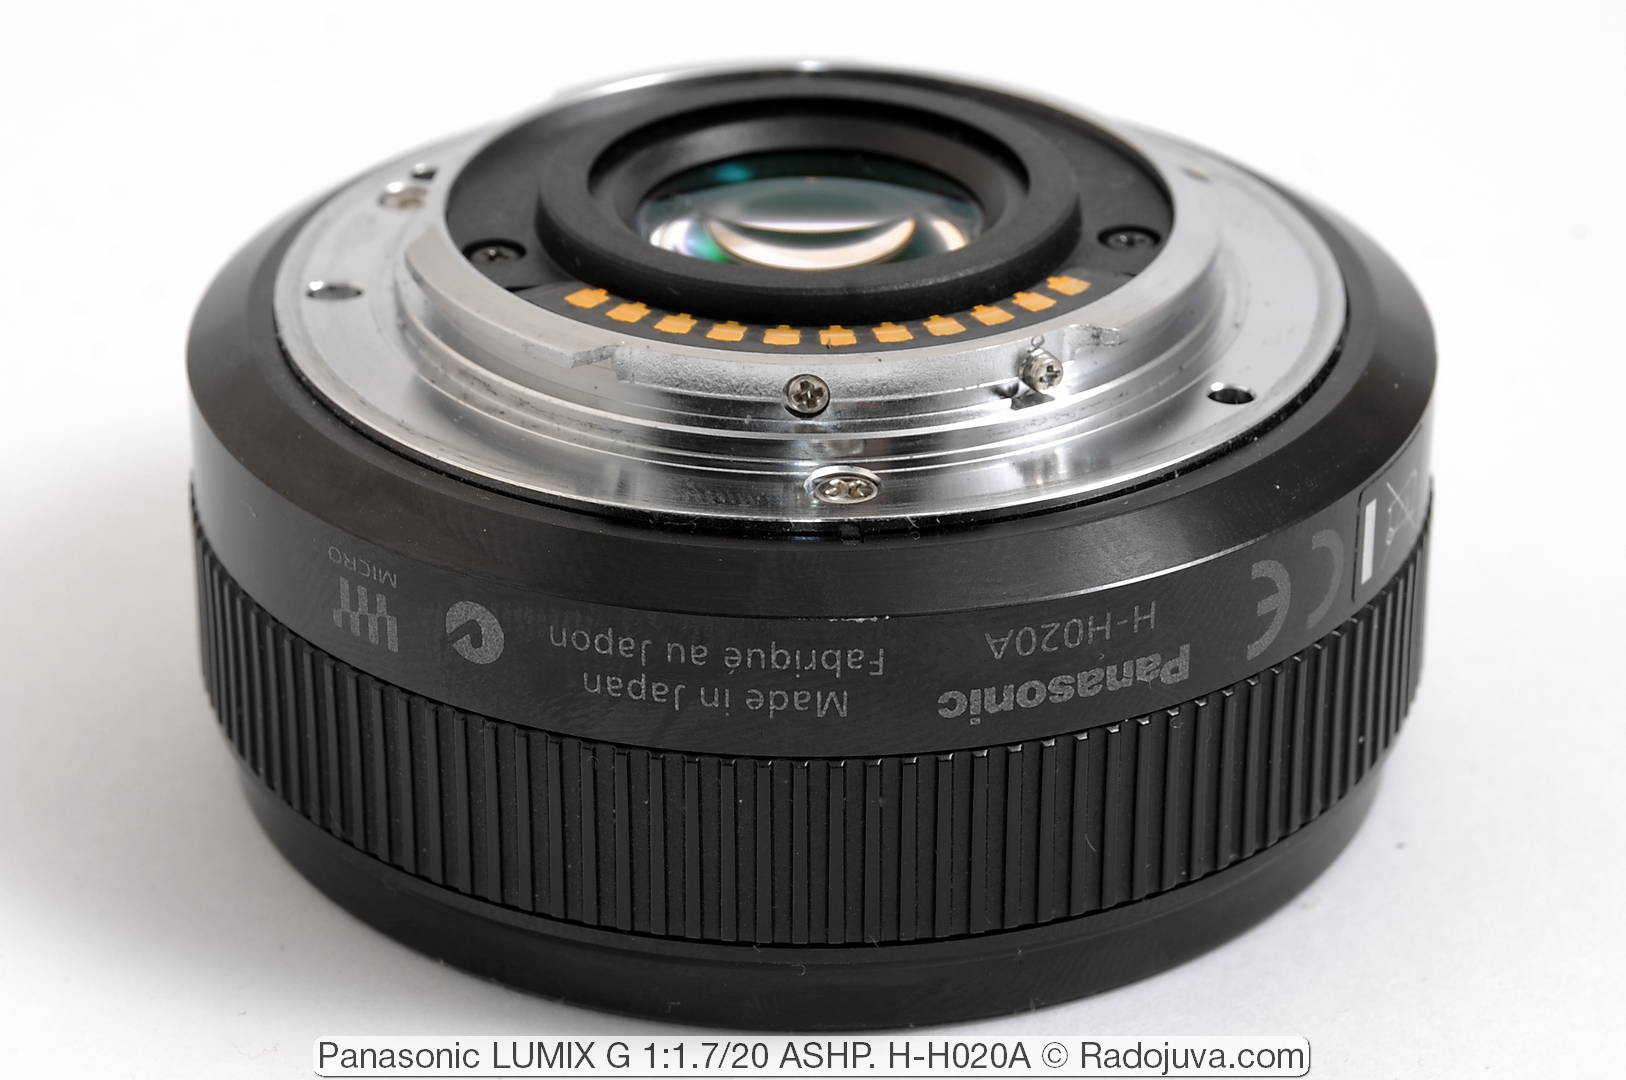 Panasonic 20mm f/1.7 ASPH LUMIX G II